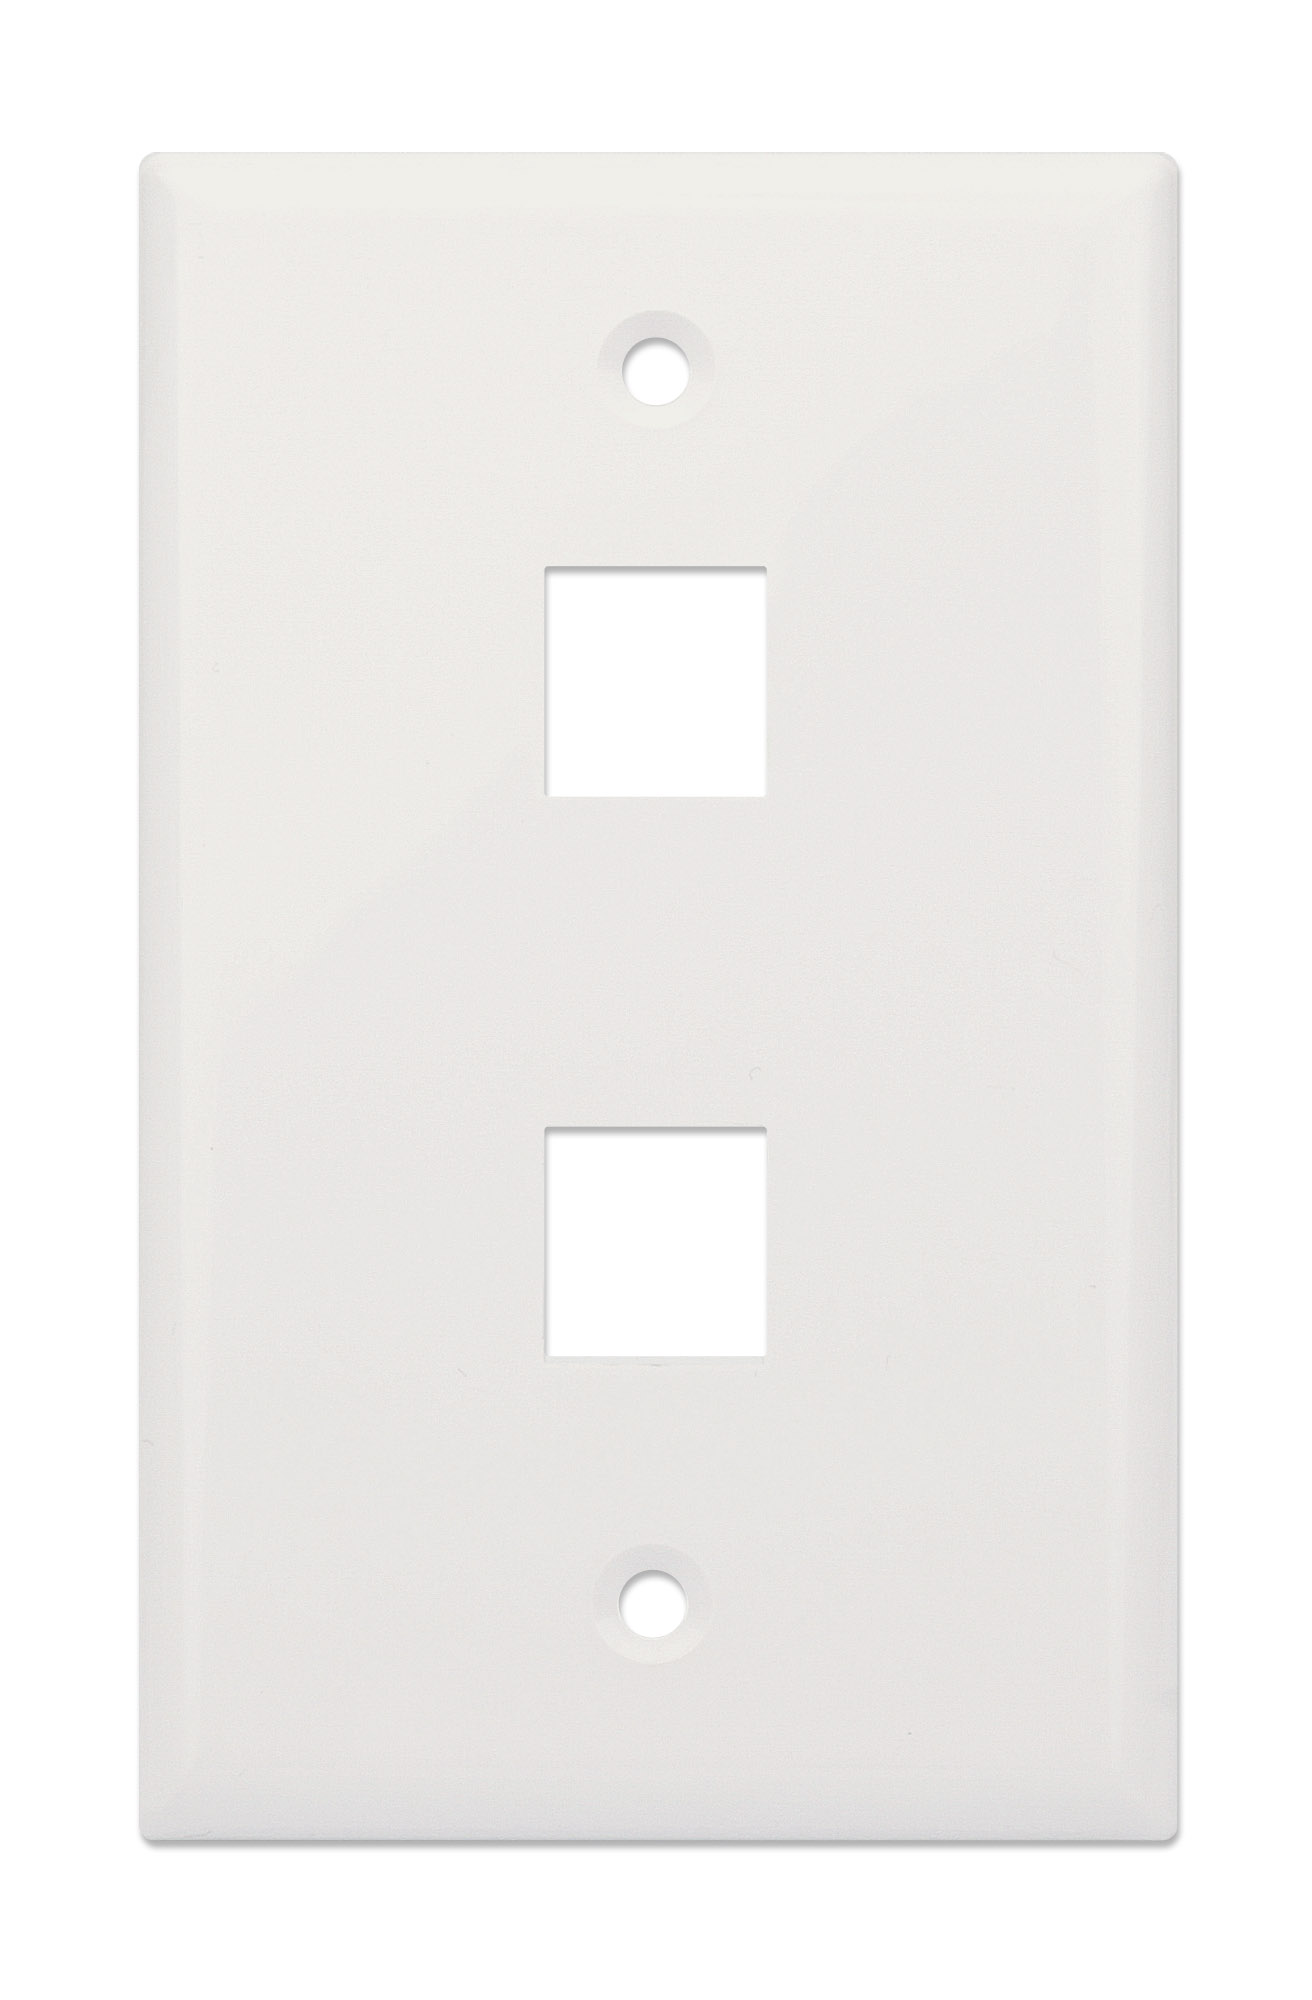 2-Outlet Keystone Wall Plate